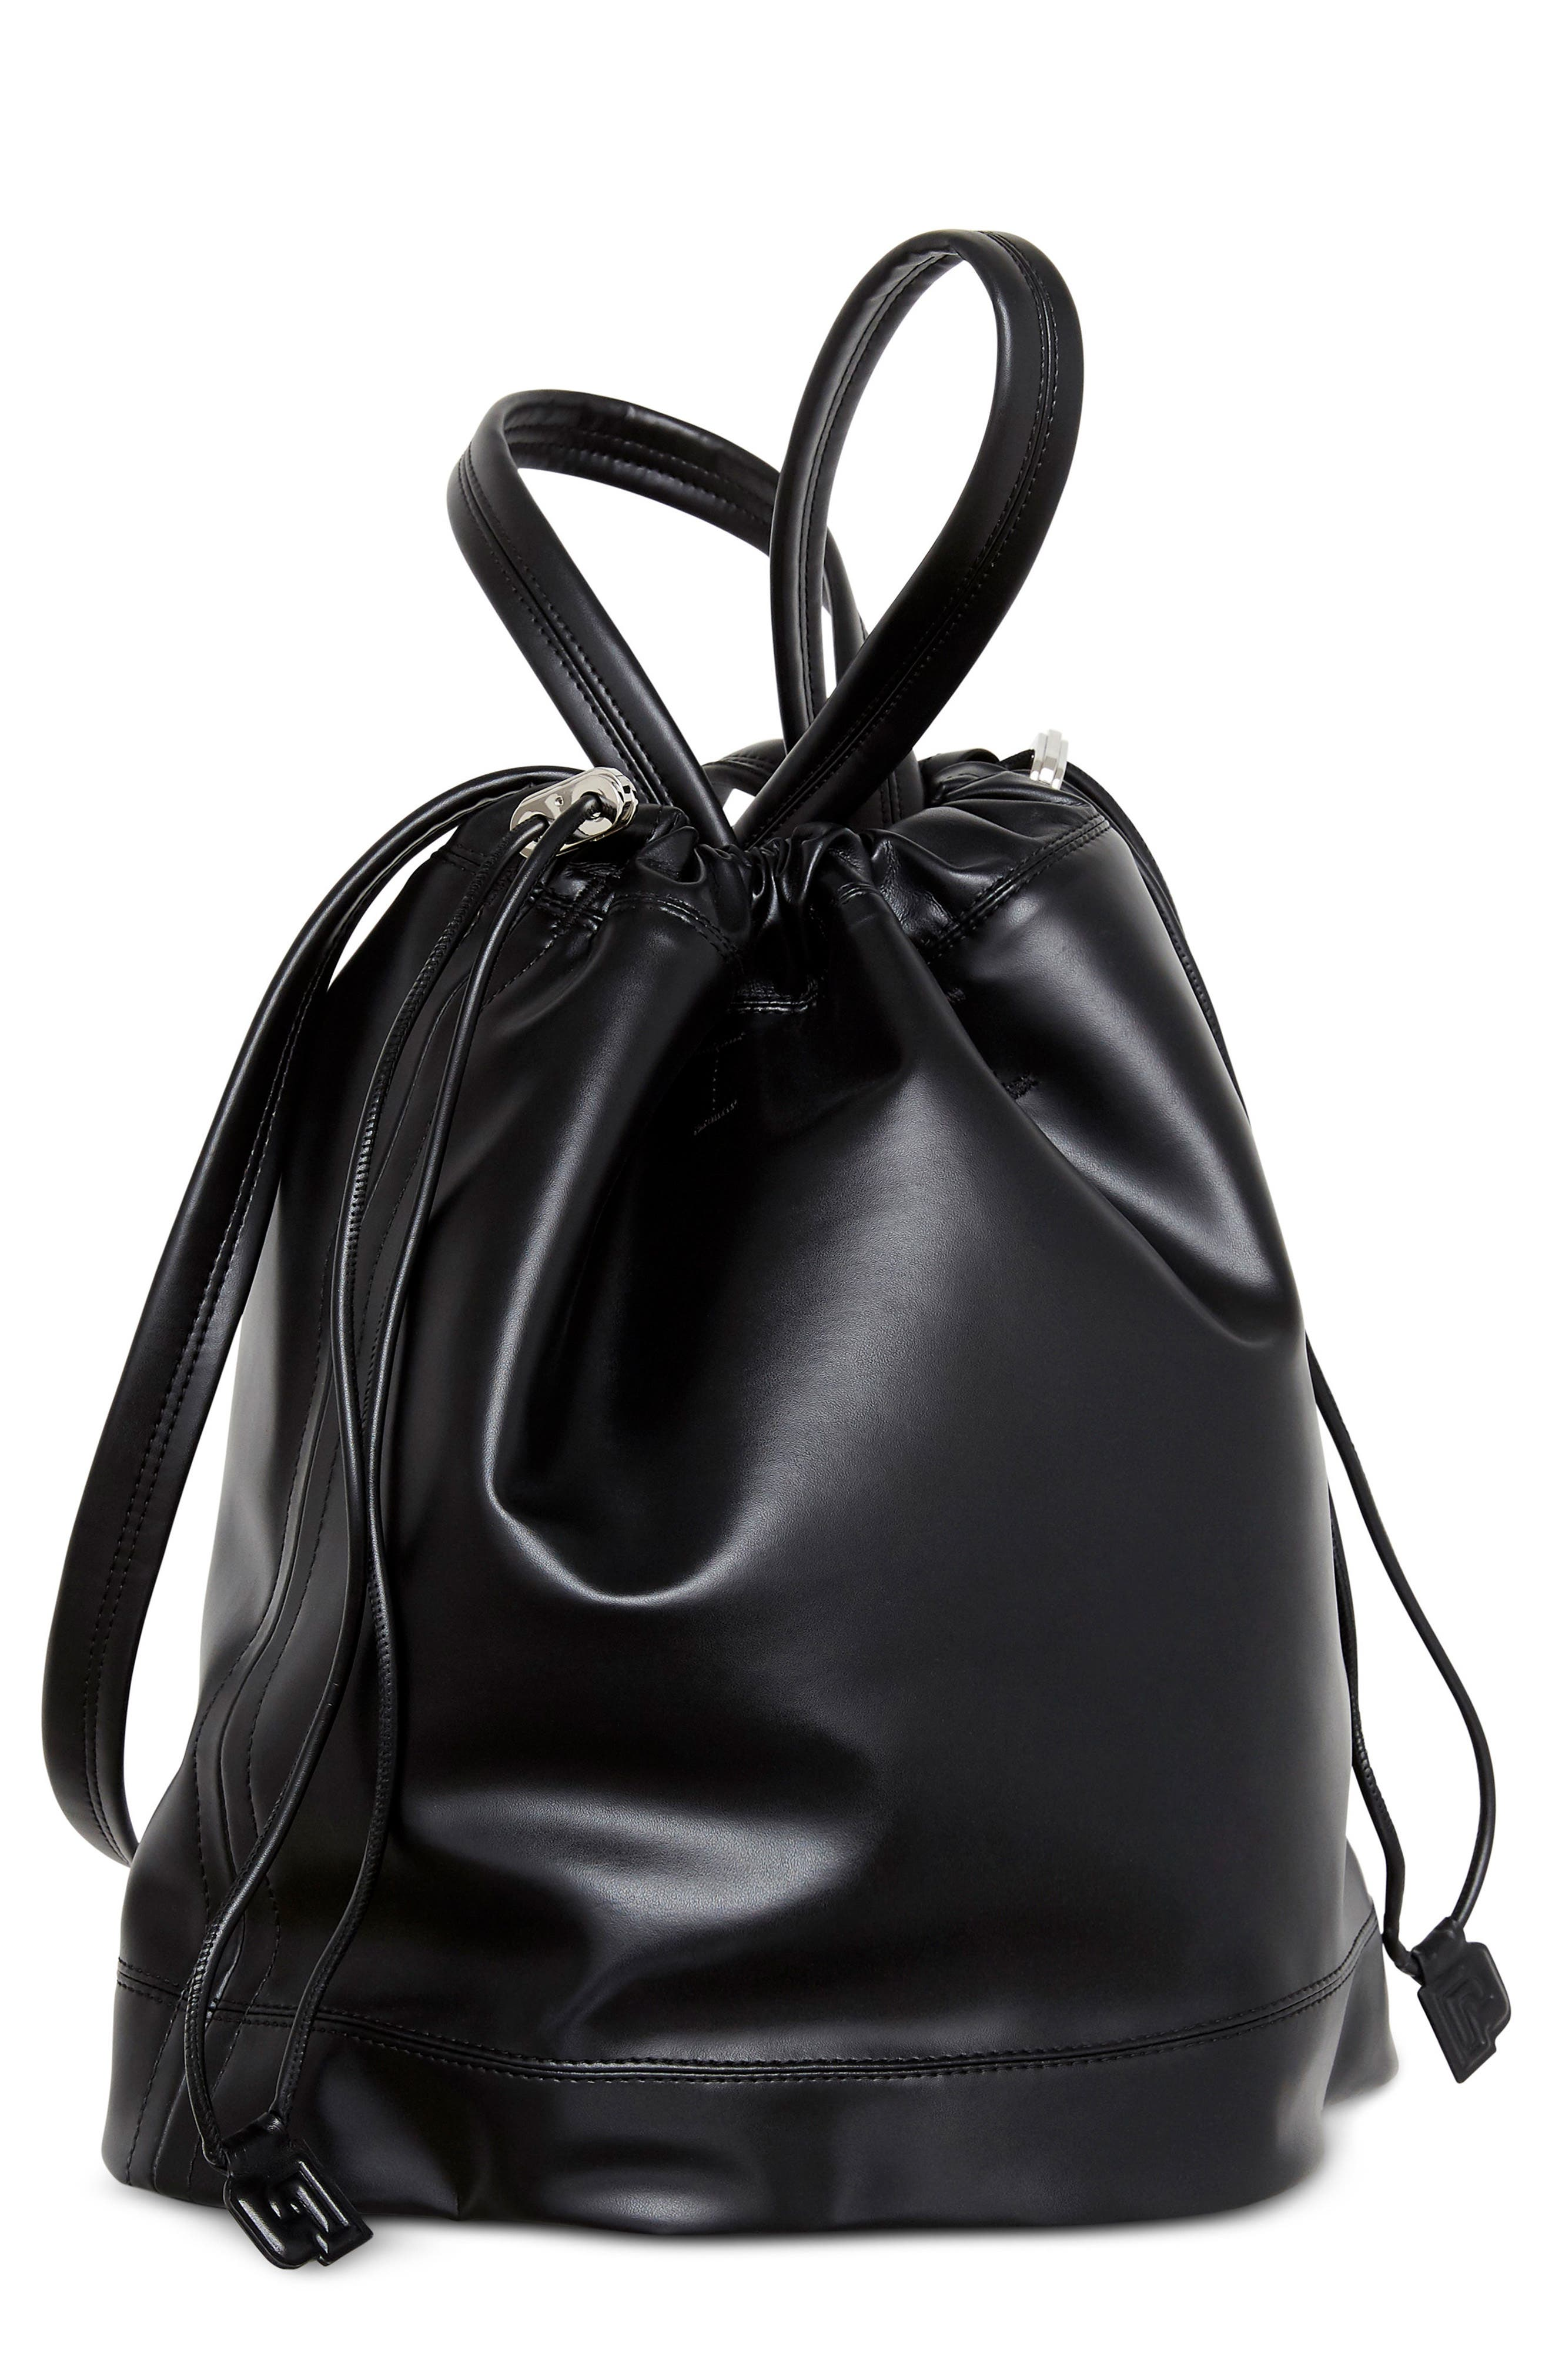 Medium Pouch Faux Leather Tote,                             Main thumbnail 1, color,                             Black